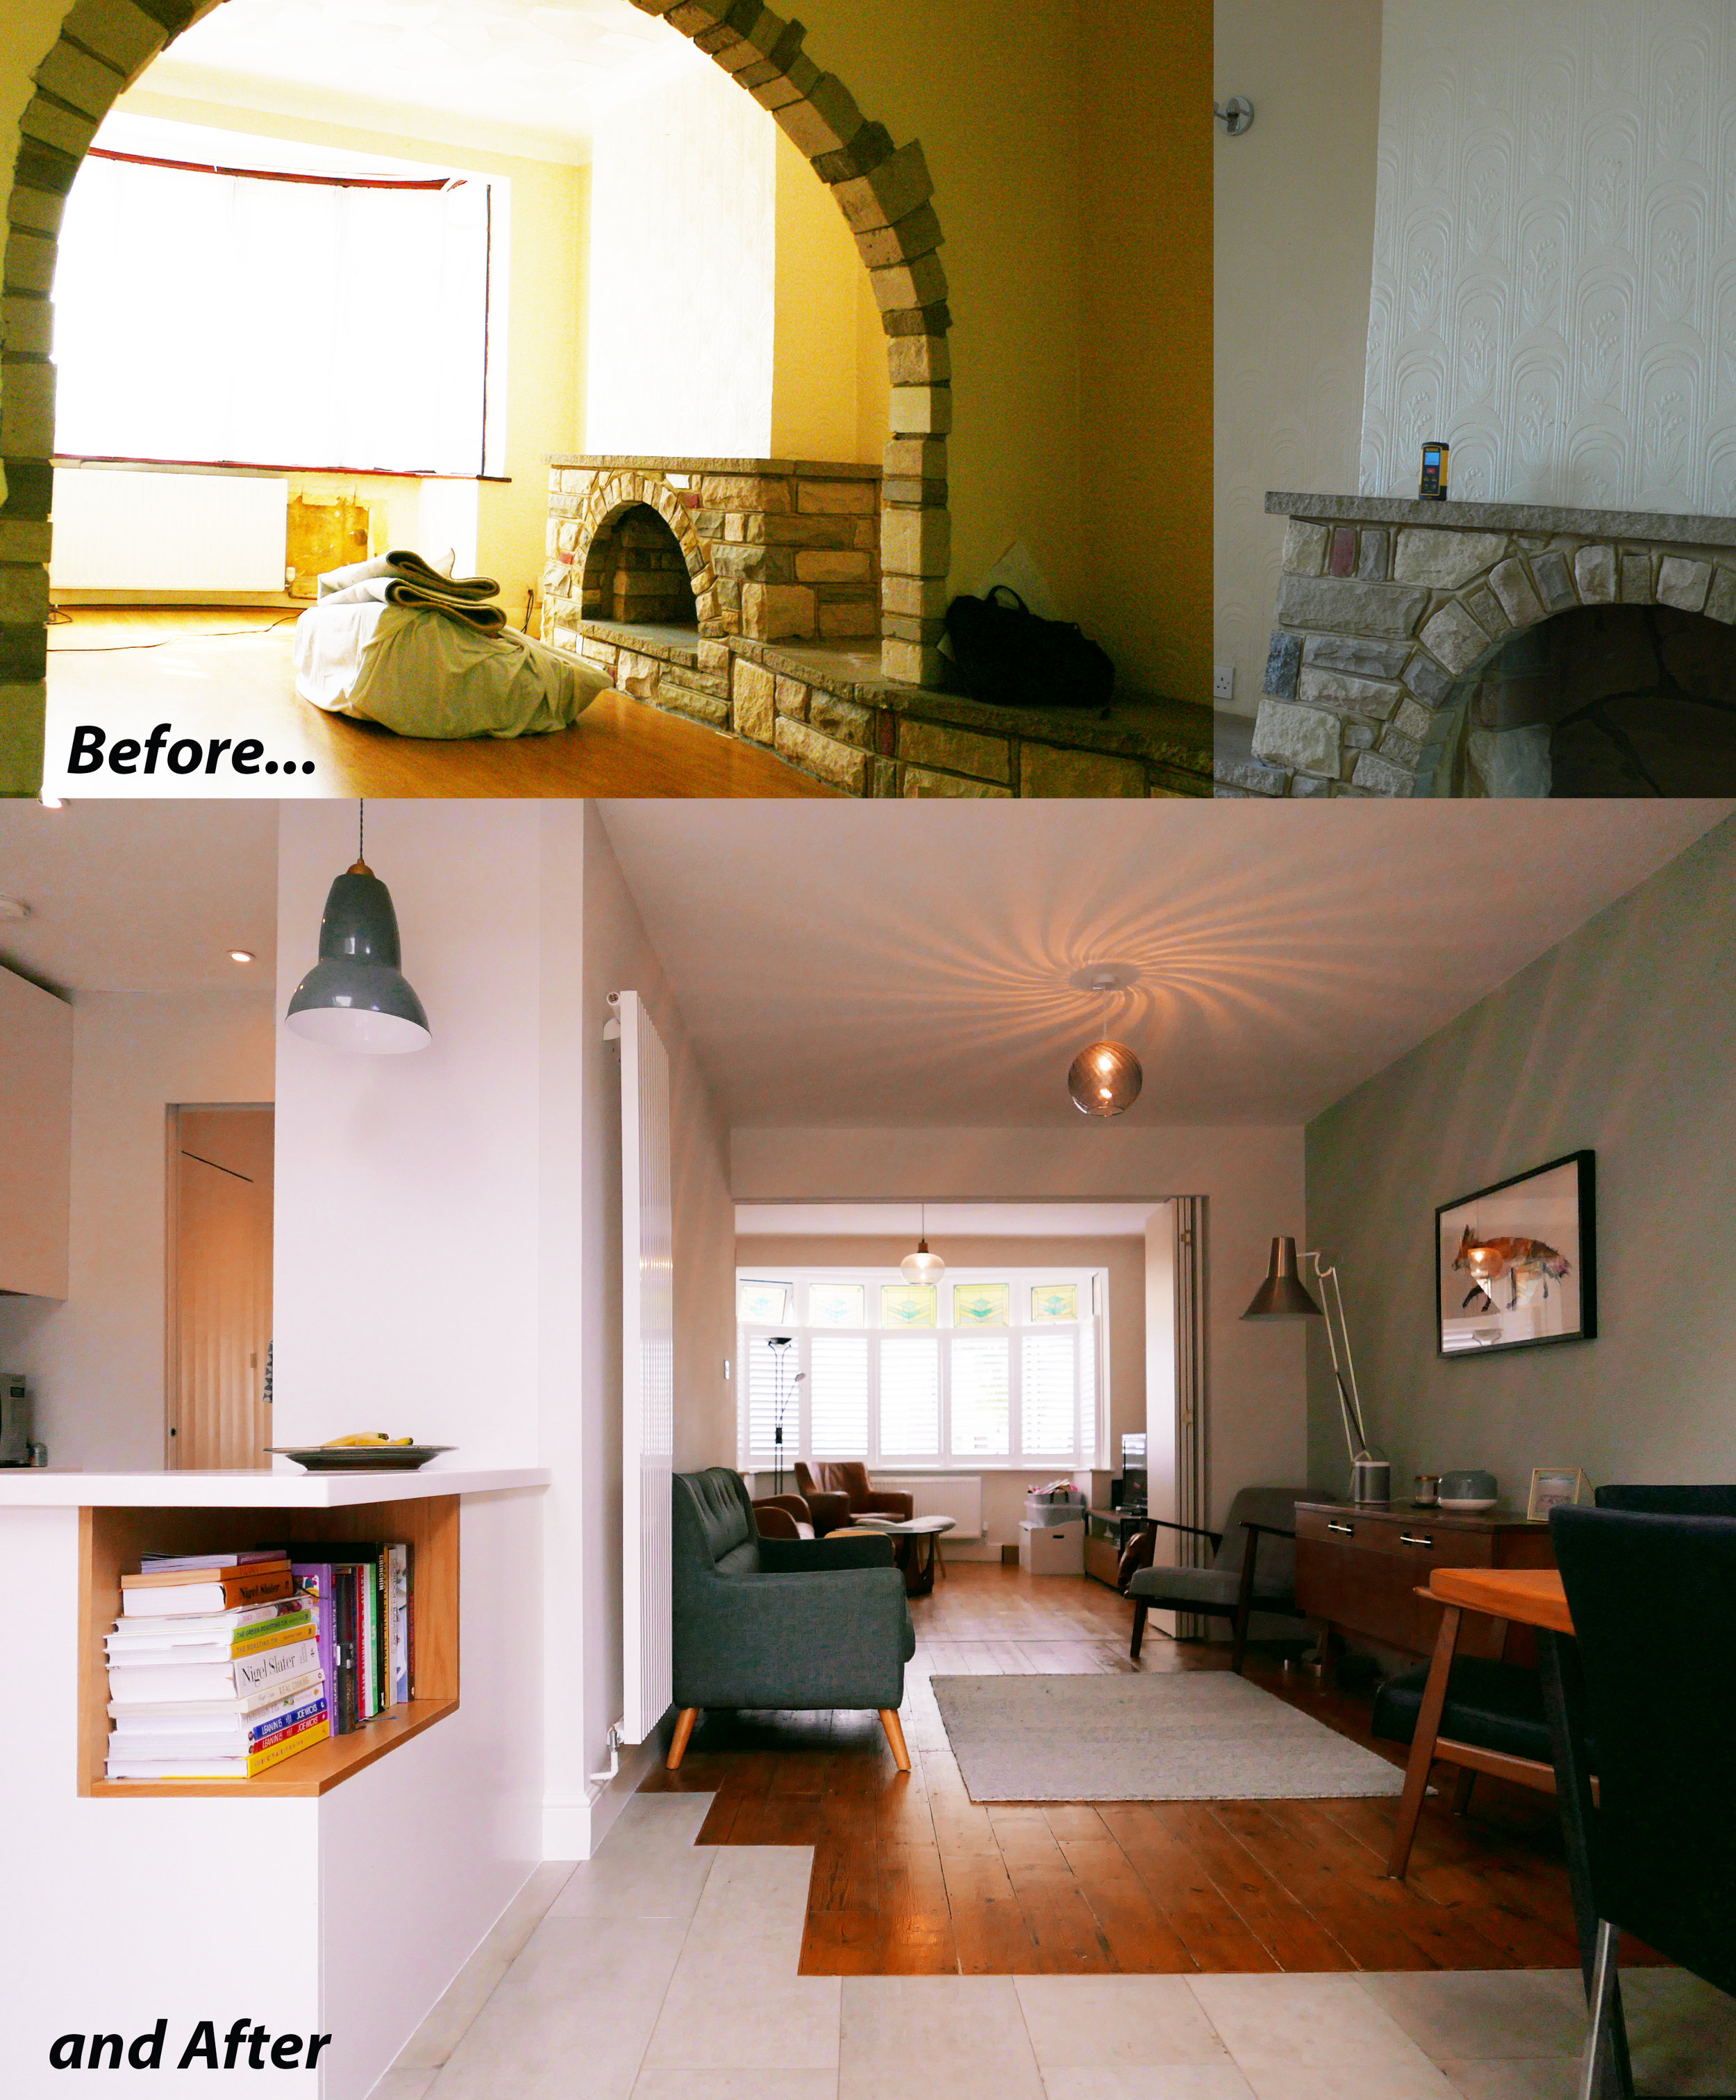 SW082_before and after 1.jpg